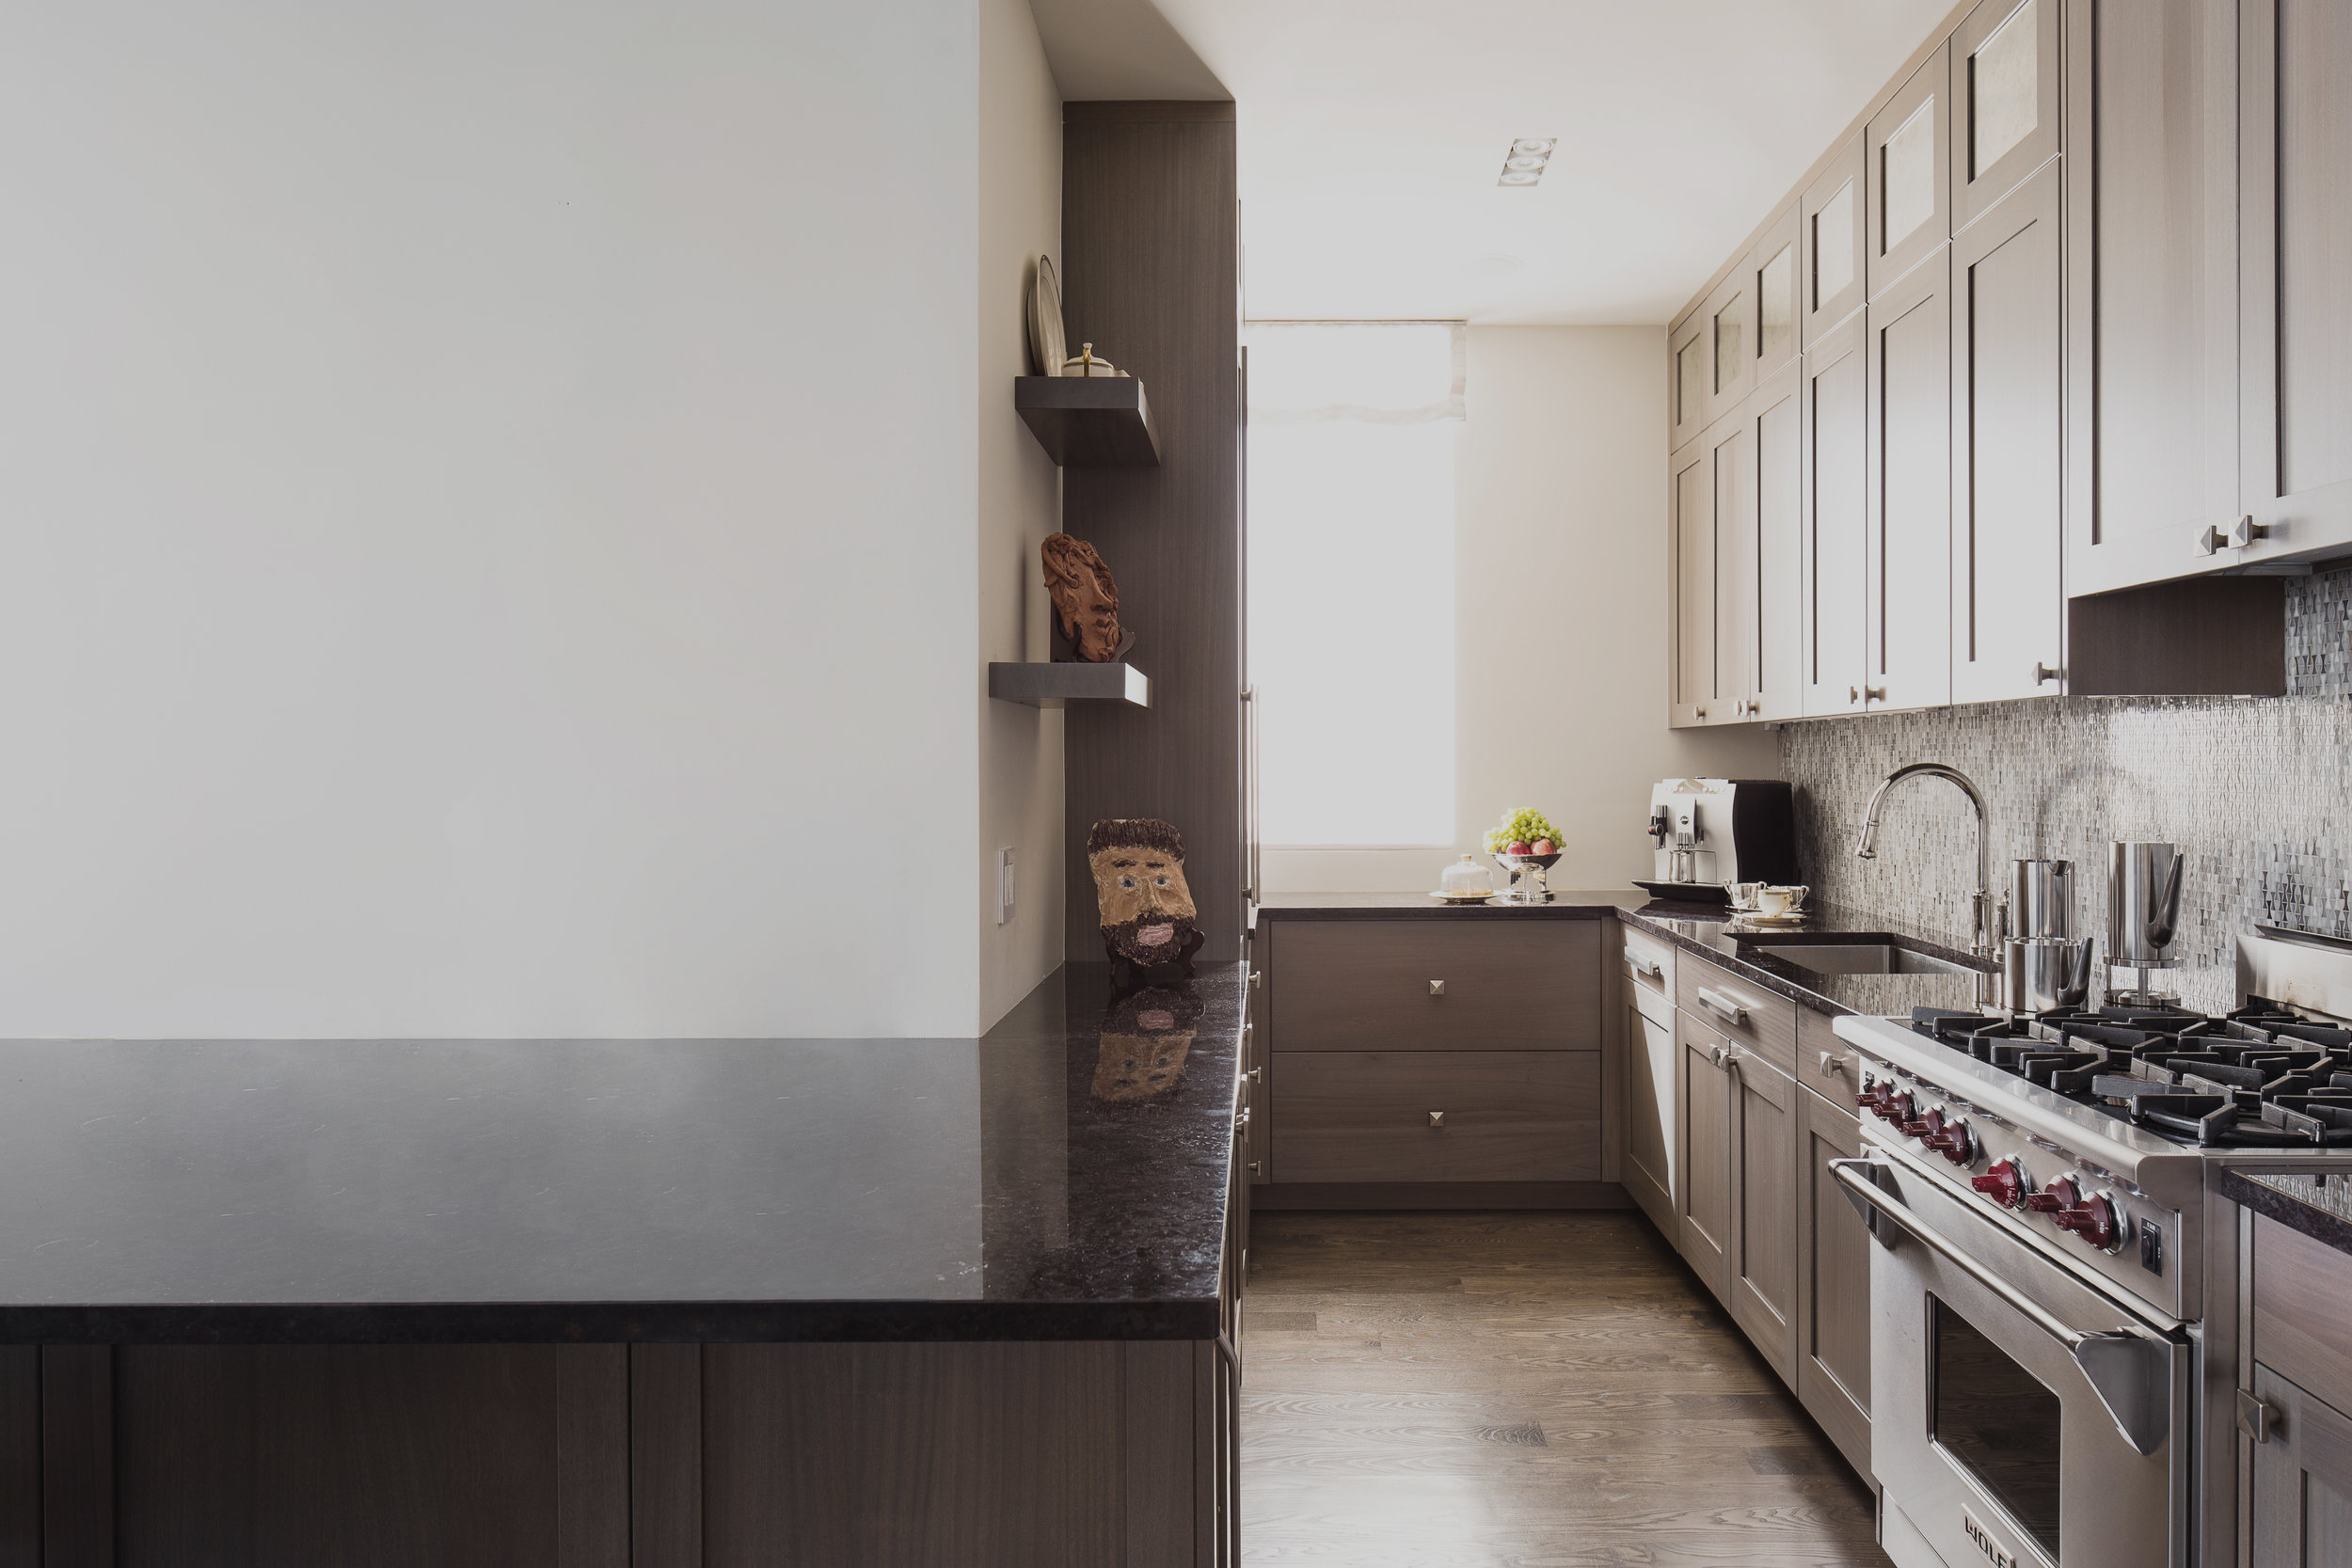 Penthouse-Kitchen-Before.jpg